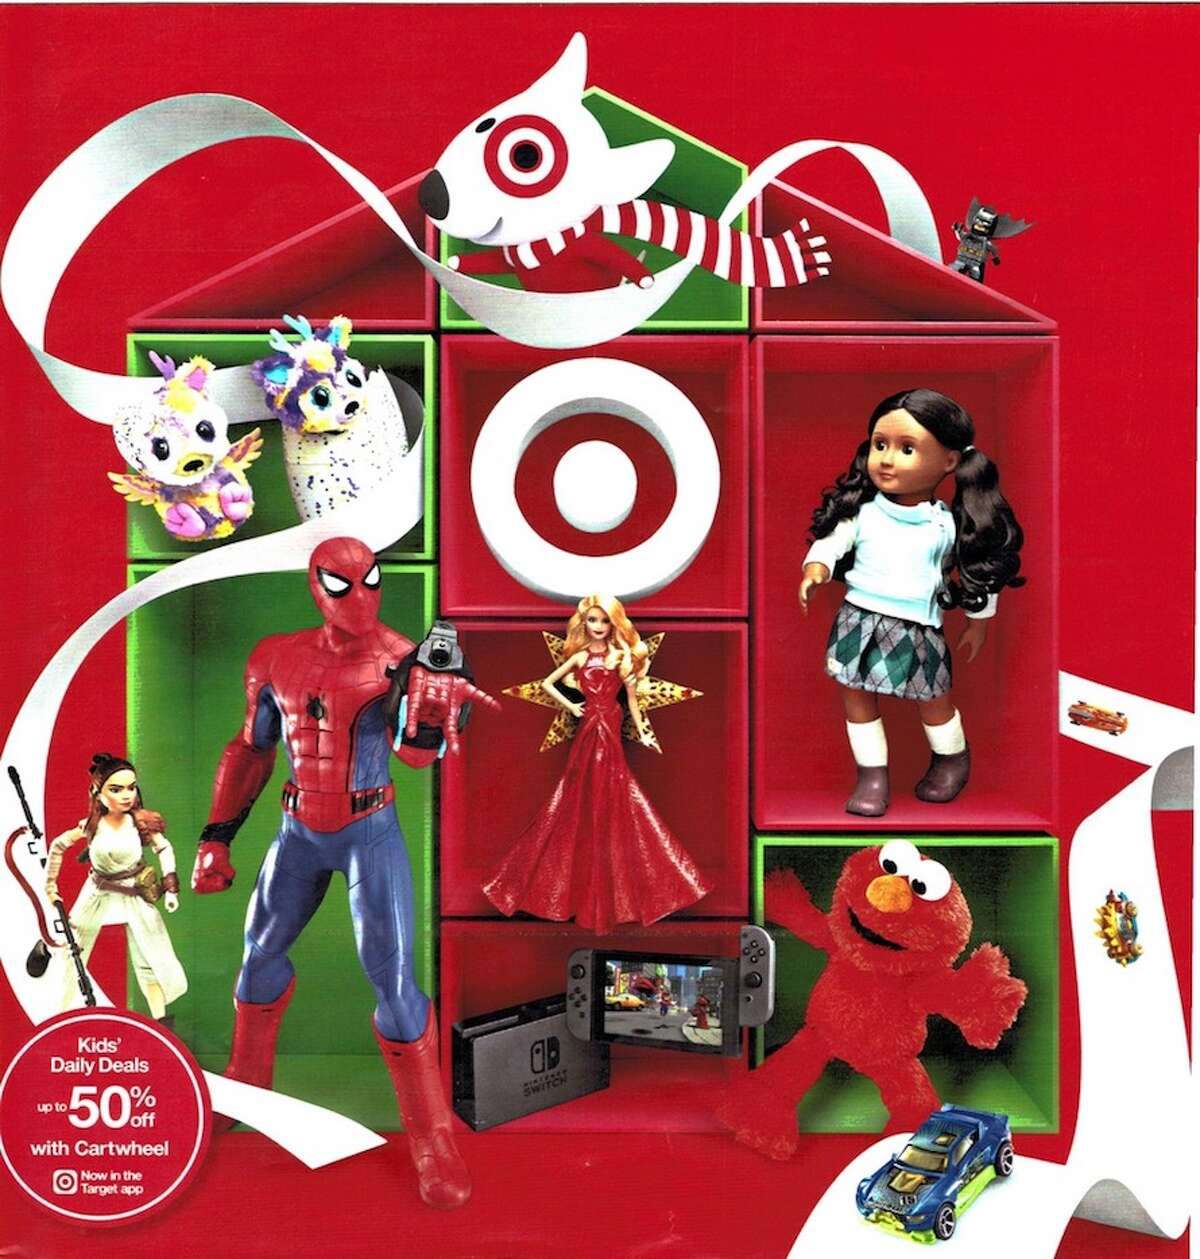 Target released their 2017 Toy Book ad to highlight their top picks of toys this gift-giving season.